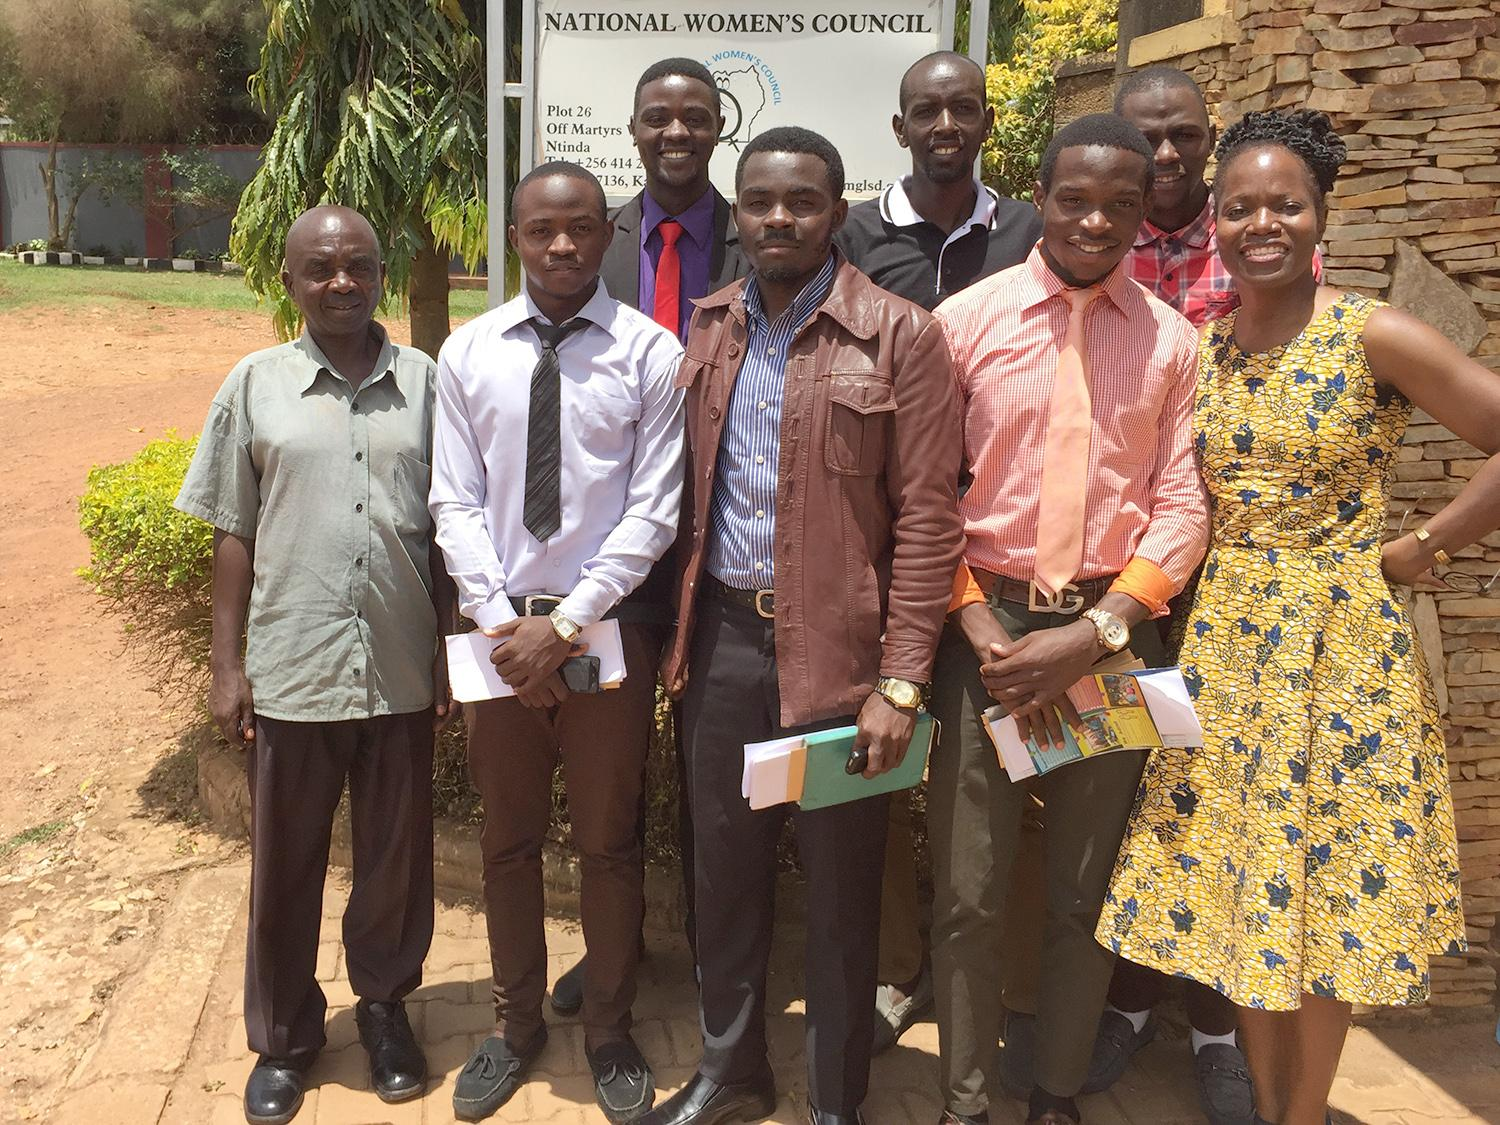 Barbara Streets with other conference participants in Uganda